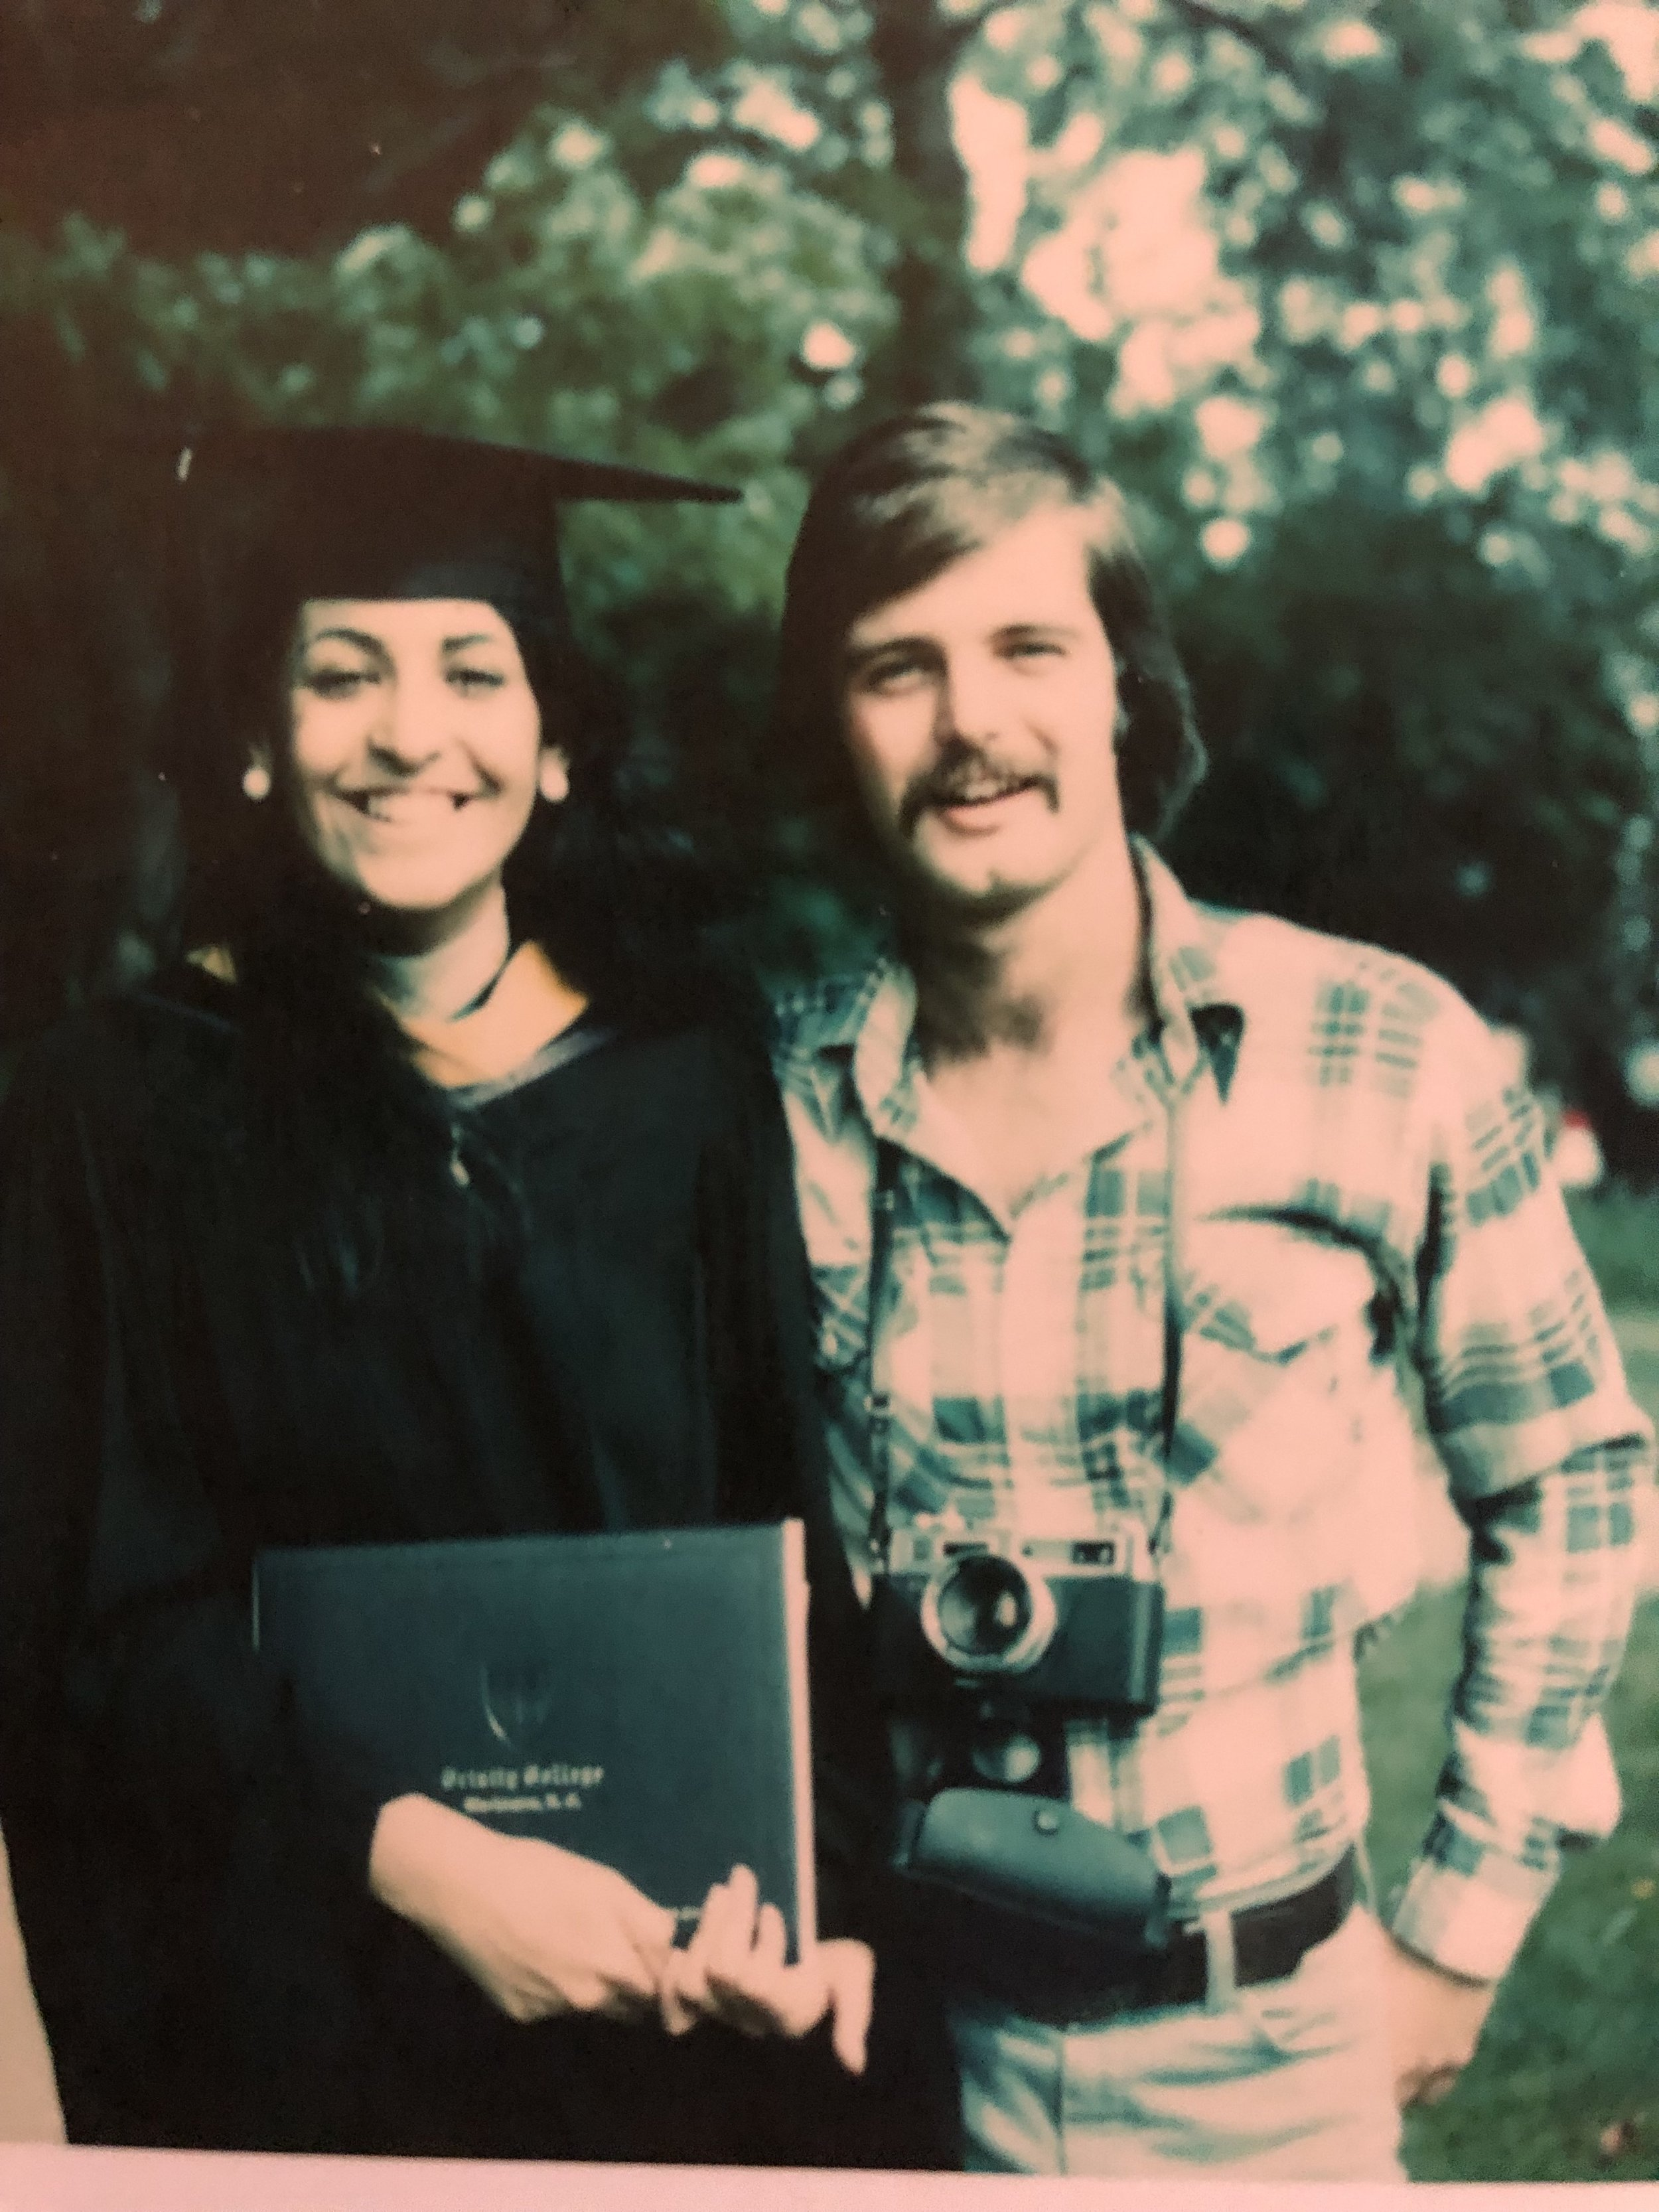 Grace and brian at Grace's graduation from Trinity college in 1978.